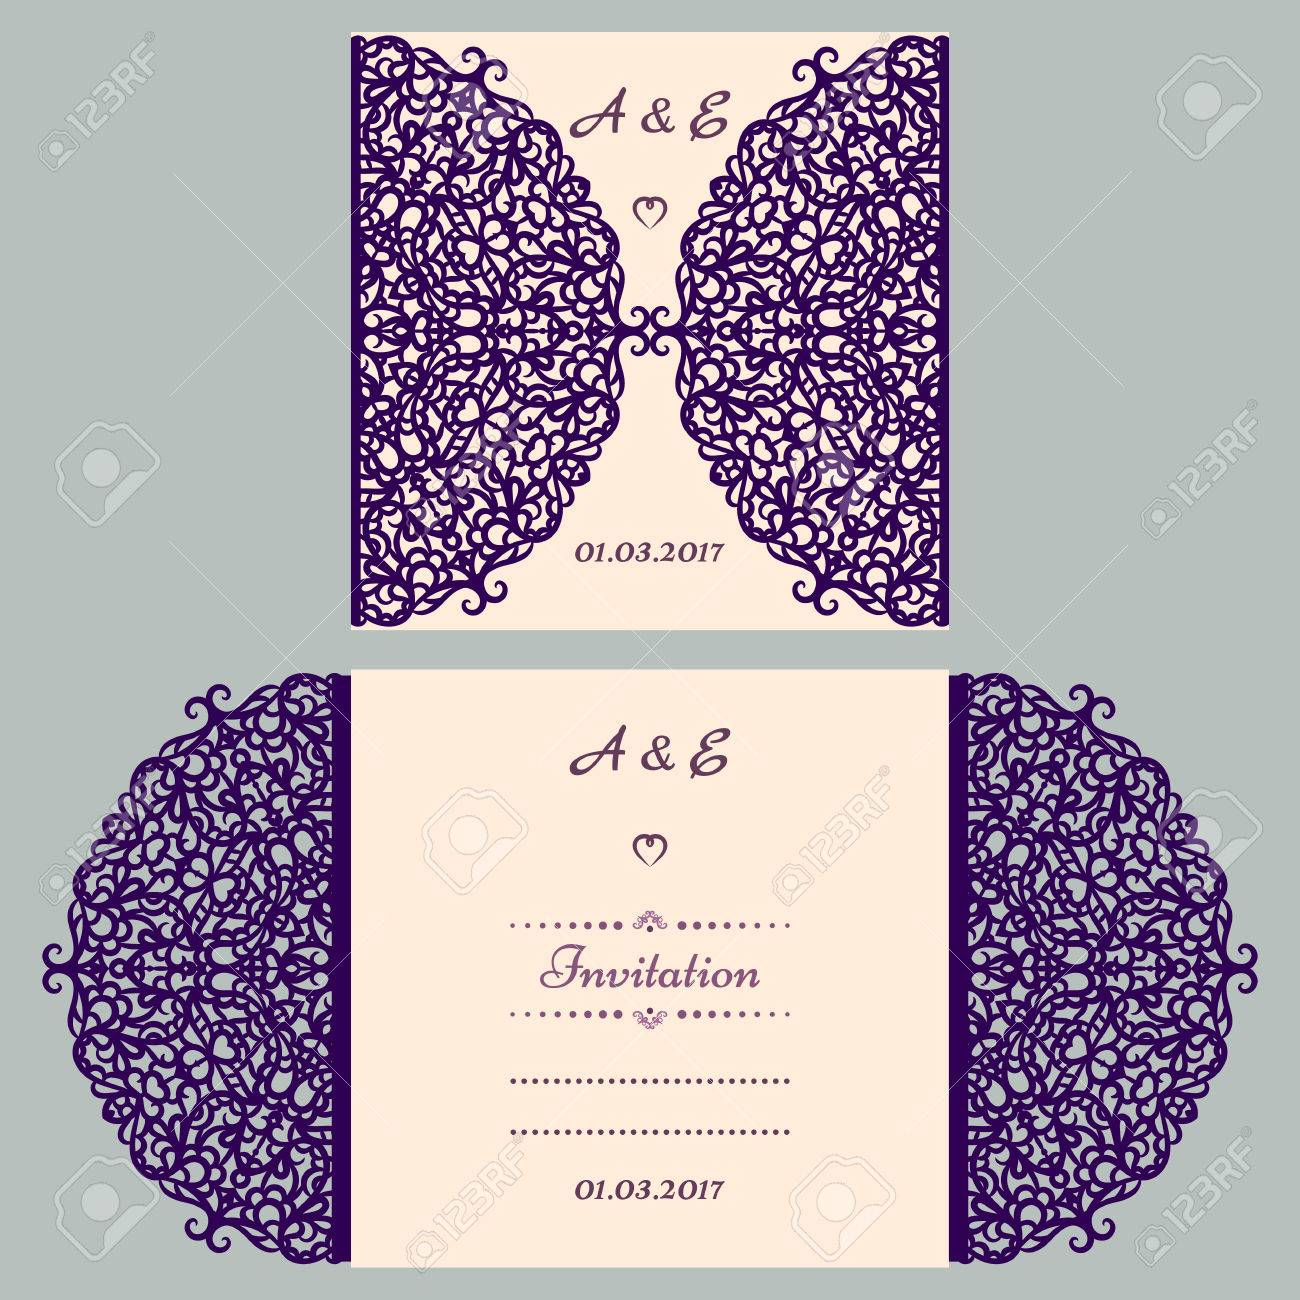 Die Cut Wedding Invitation Card Template Paper Cut Out Card